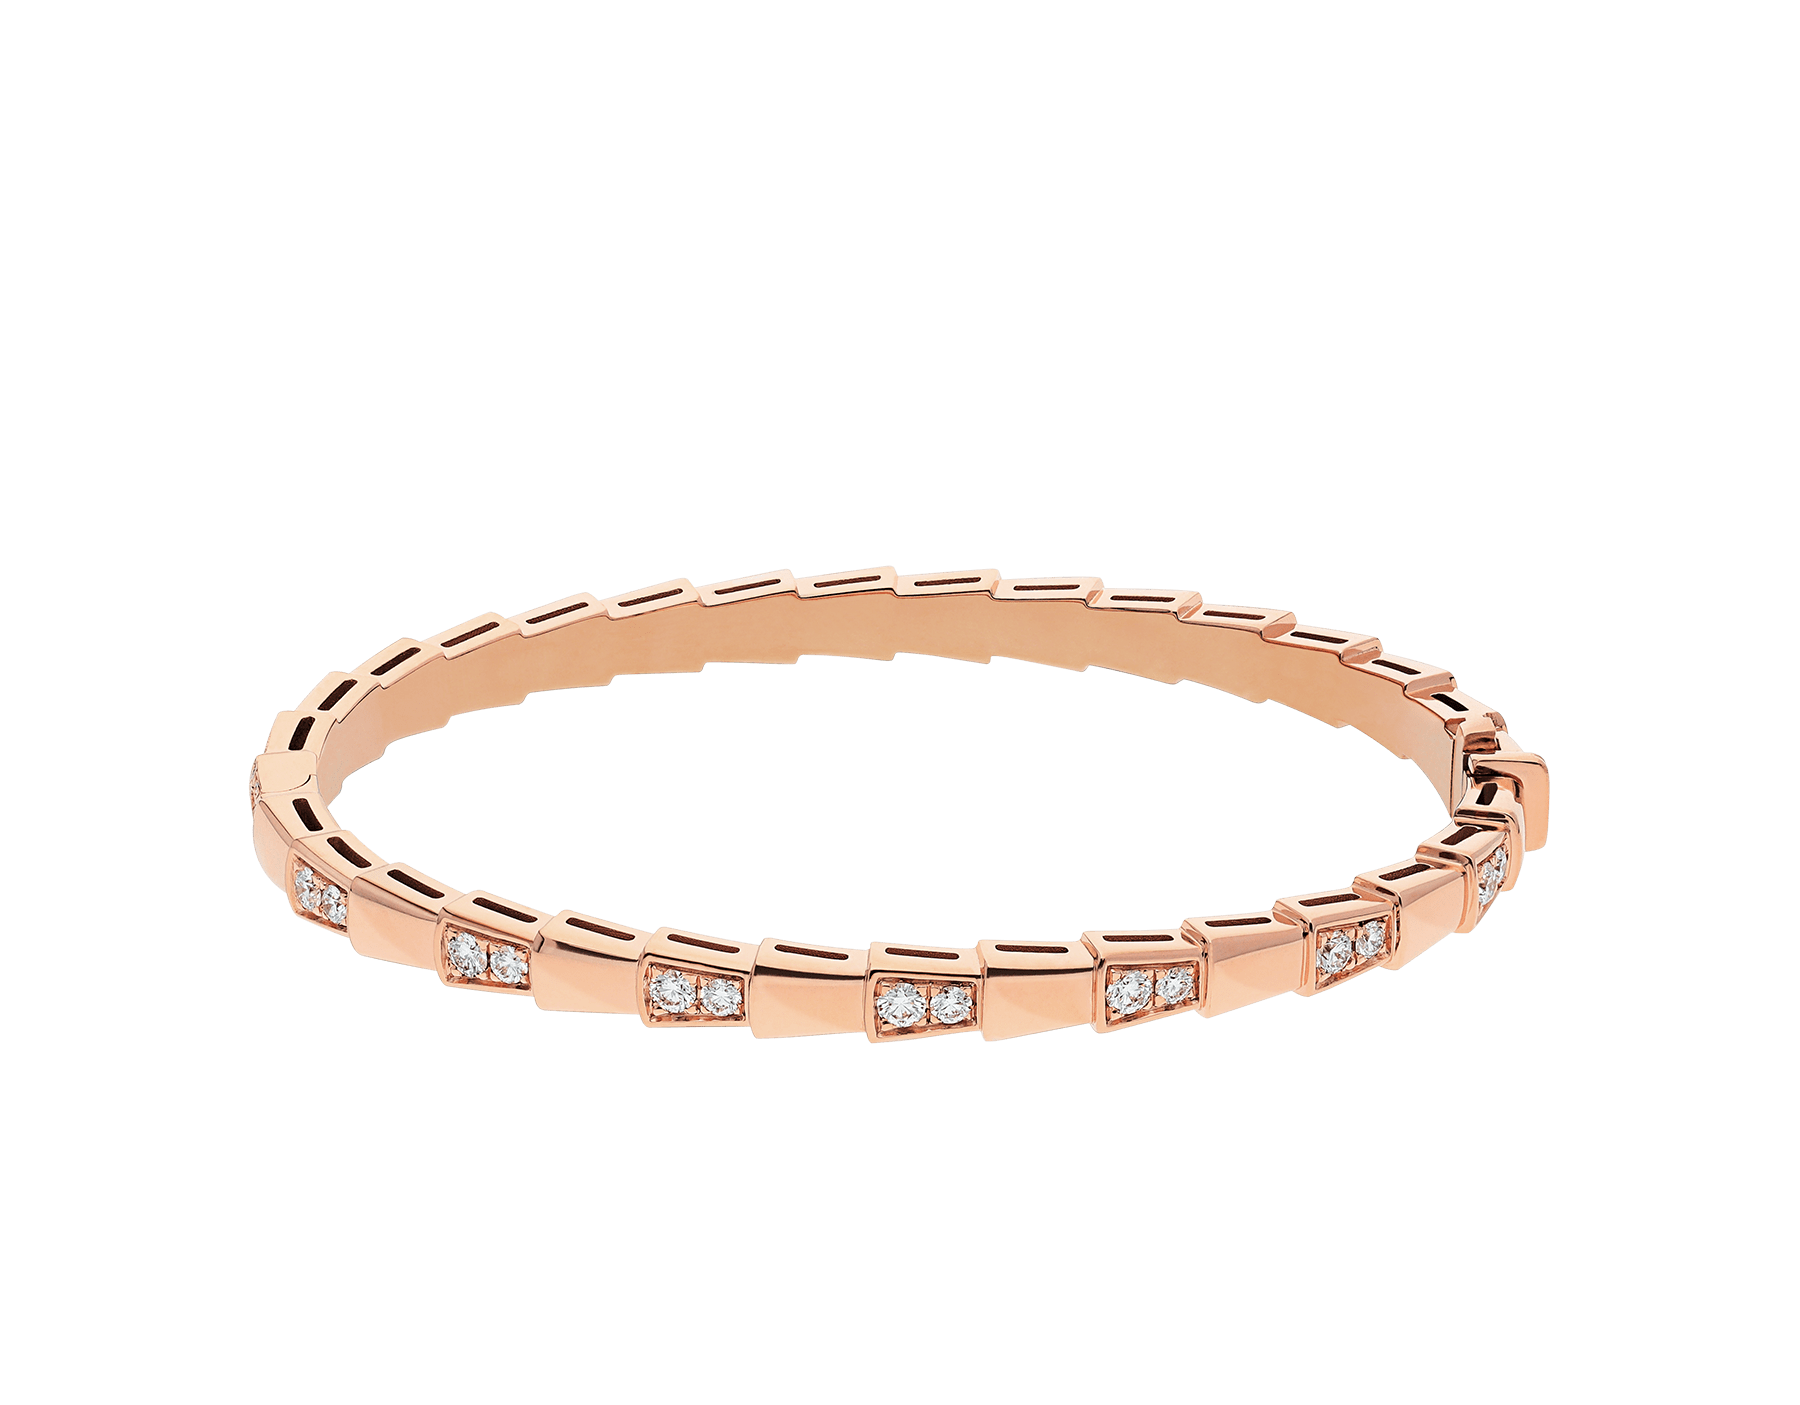 Serpenti Viper 18 kt rose gold bracelet set with demi-pavé diamonds. (width 4 mm) BR858319 image 2